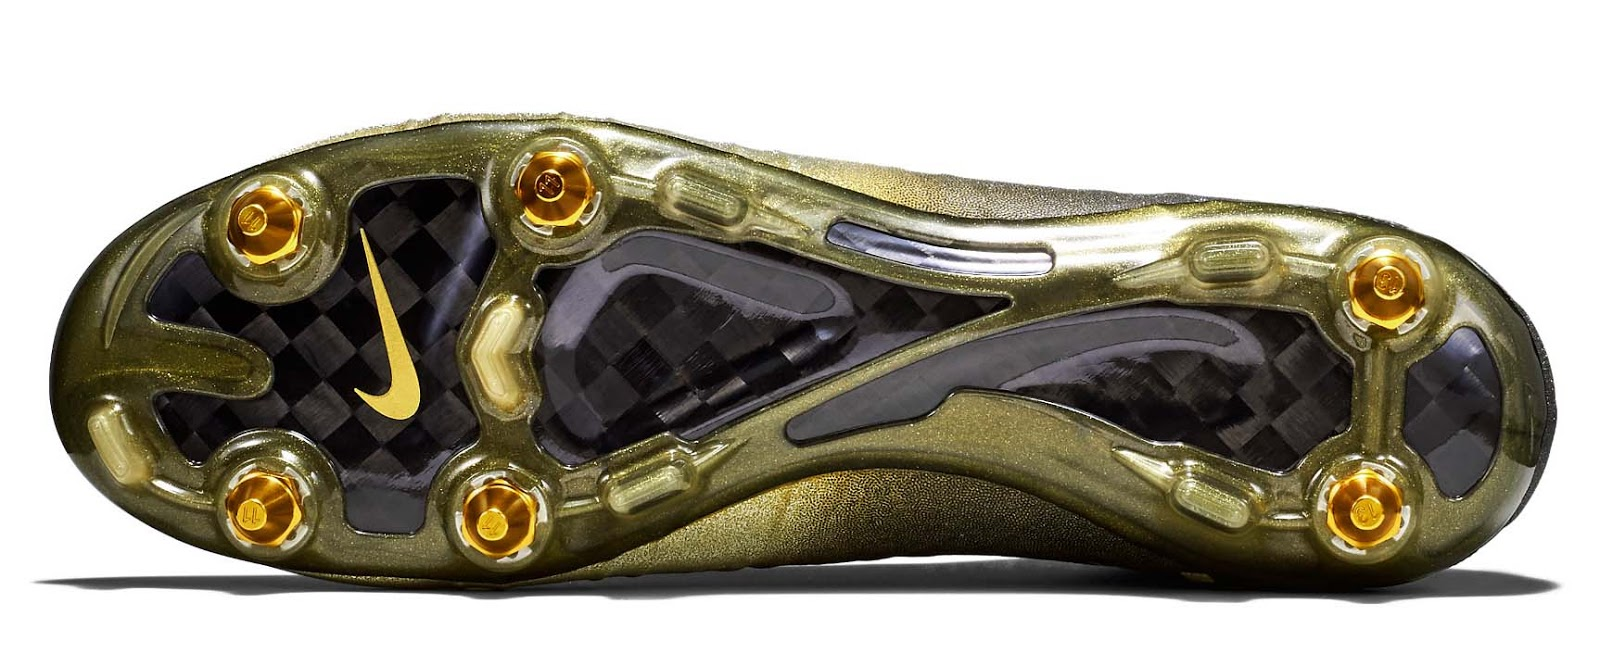 mercurial superfly cr7 rare gold price Designed for greater responsive  cushioning 09d621b598721